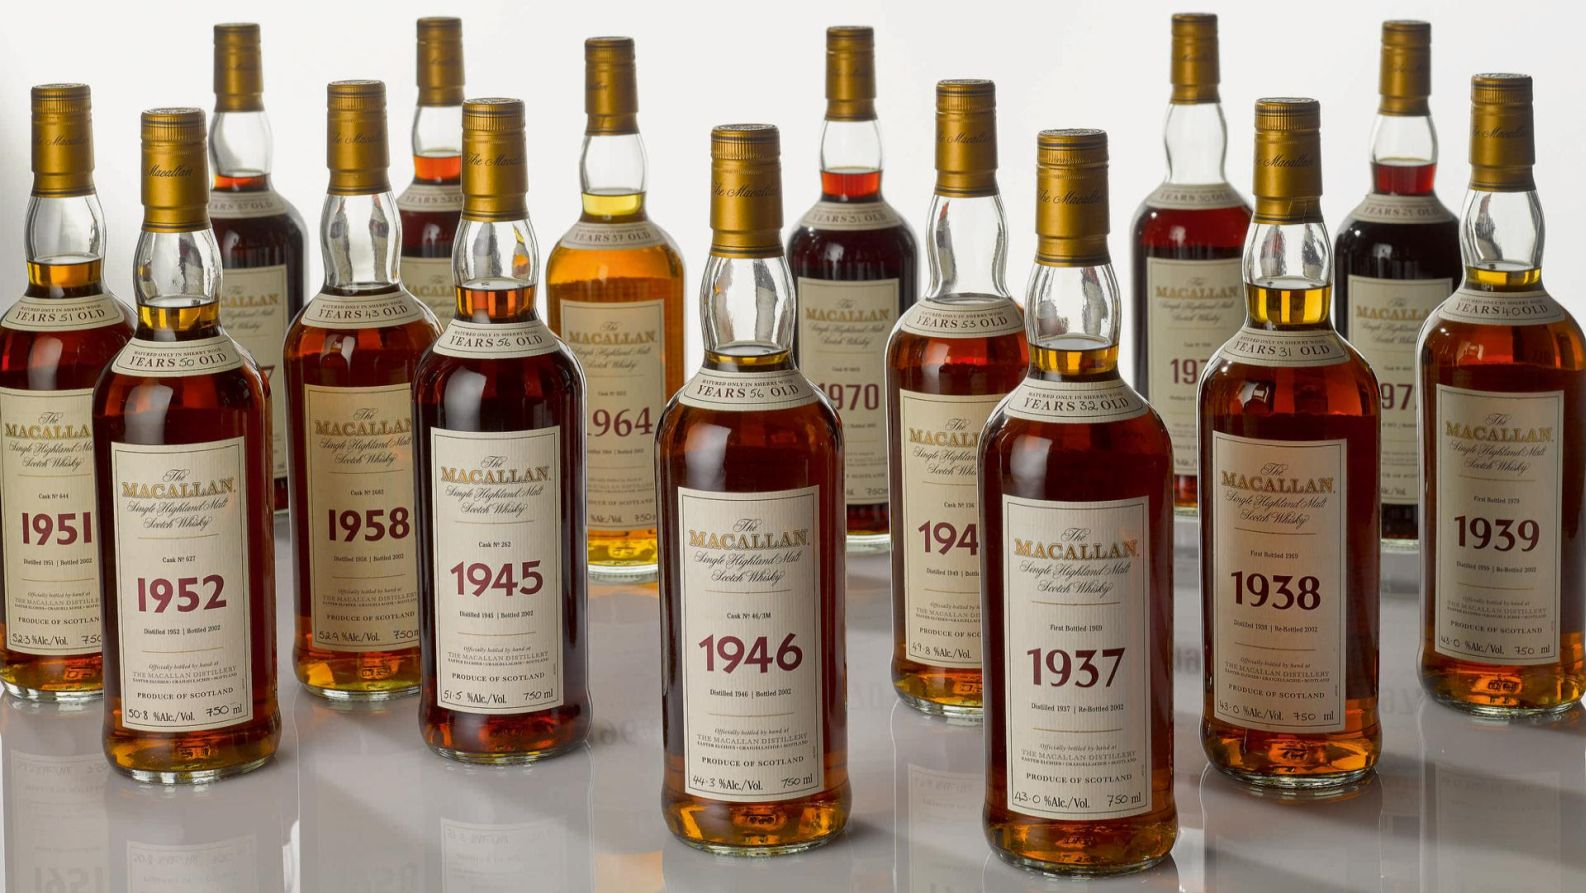 Sotheby's is auctioning the legendary Macallan 1945 online this spring